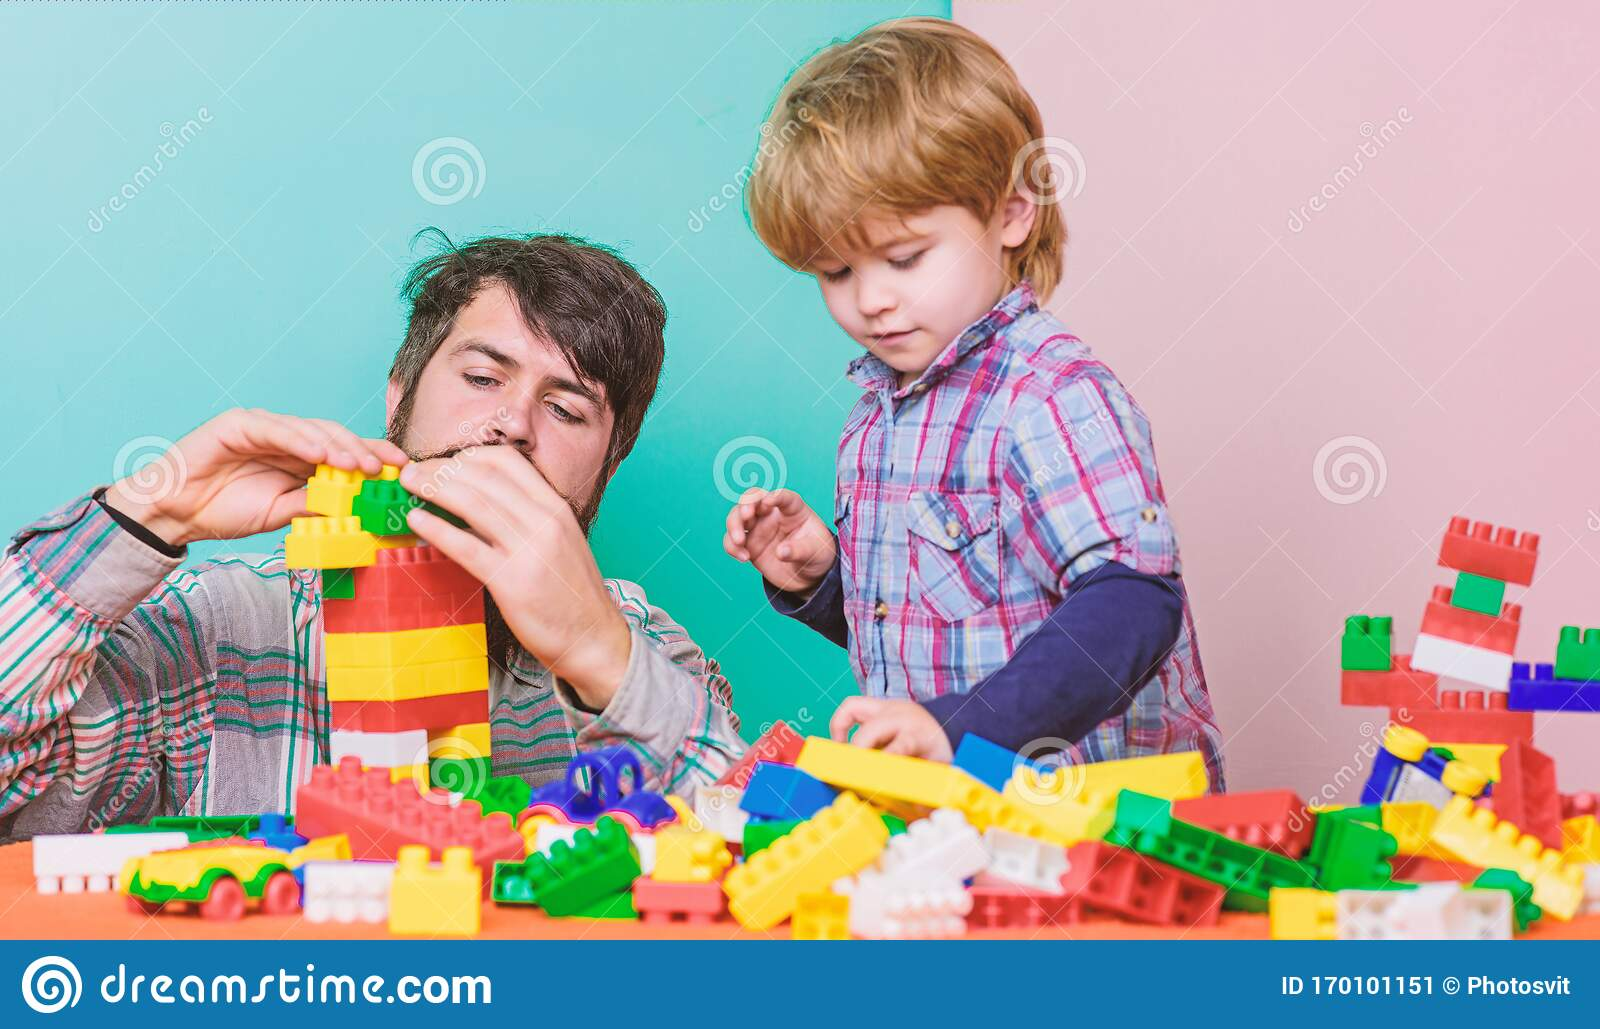 Building With Colorful Constructor Love Child Development Father And Son Play Game Small Boy With Dad Playing Stock Image Image Of Bricks Kids 170101151